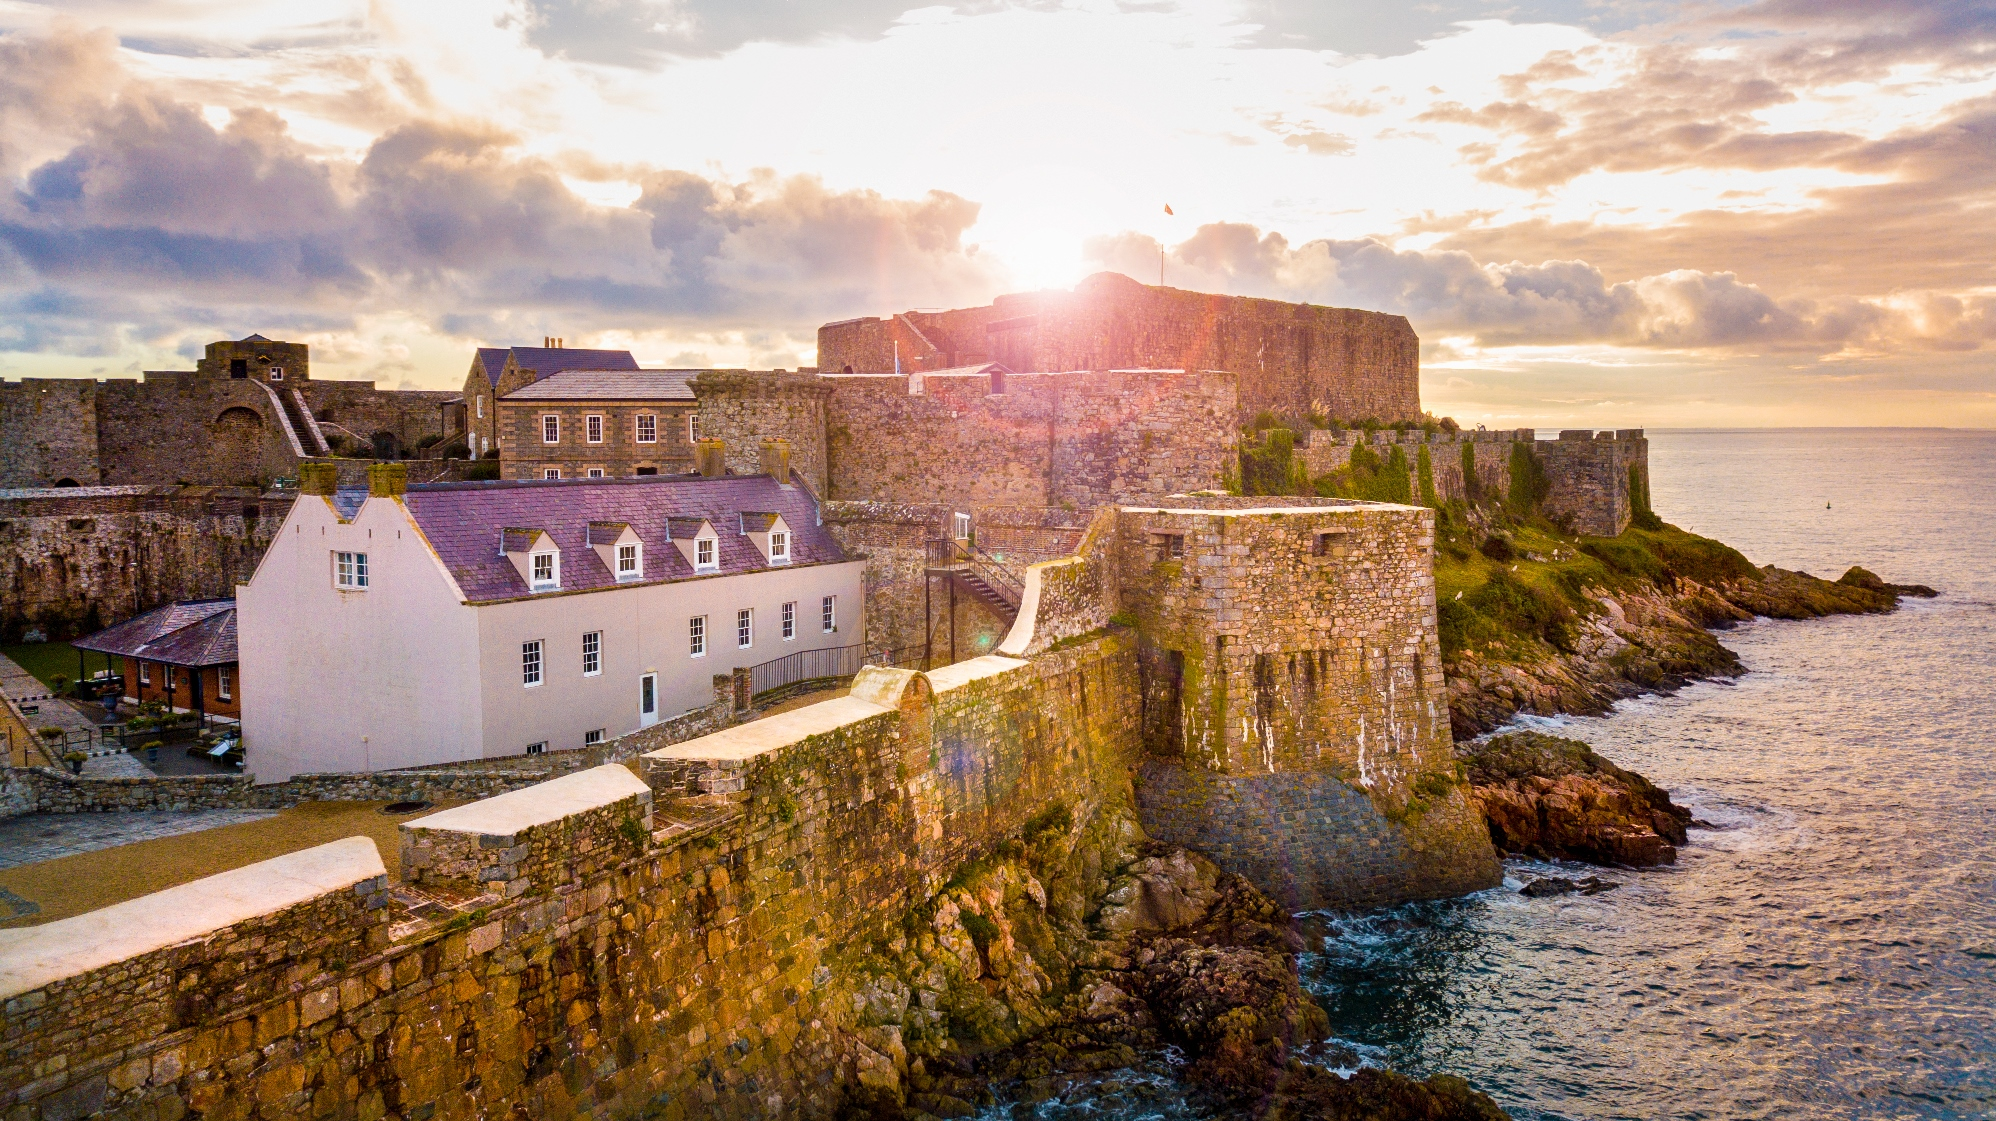 Weekend away: what to see and do in Guernsey